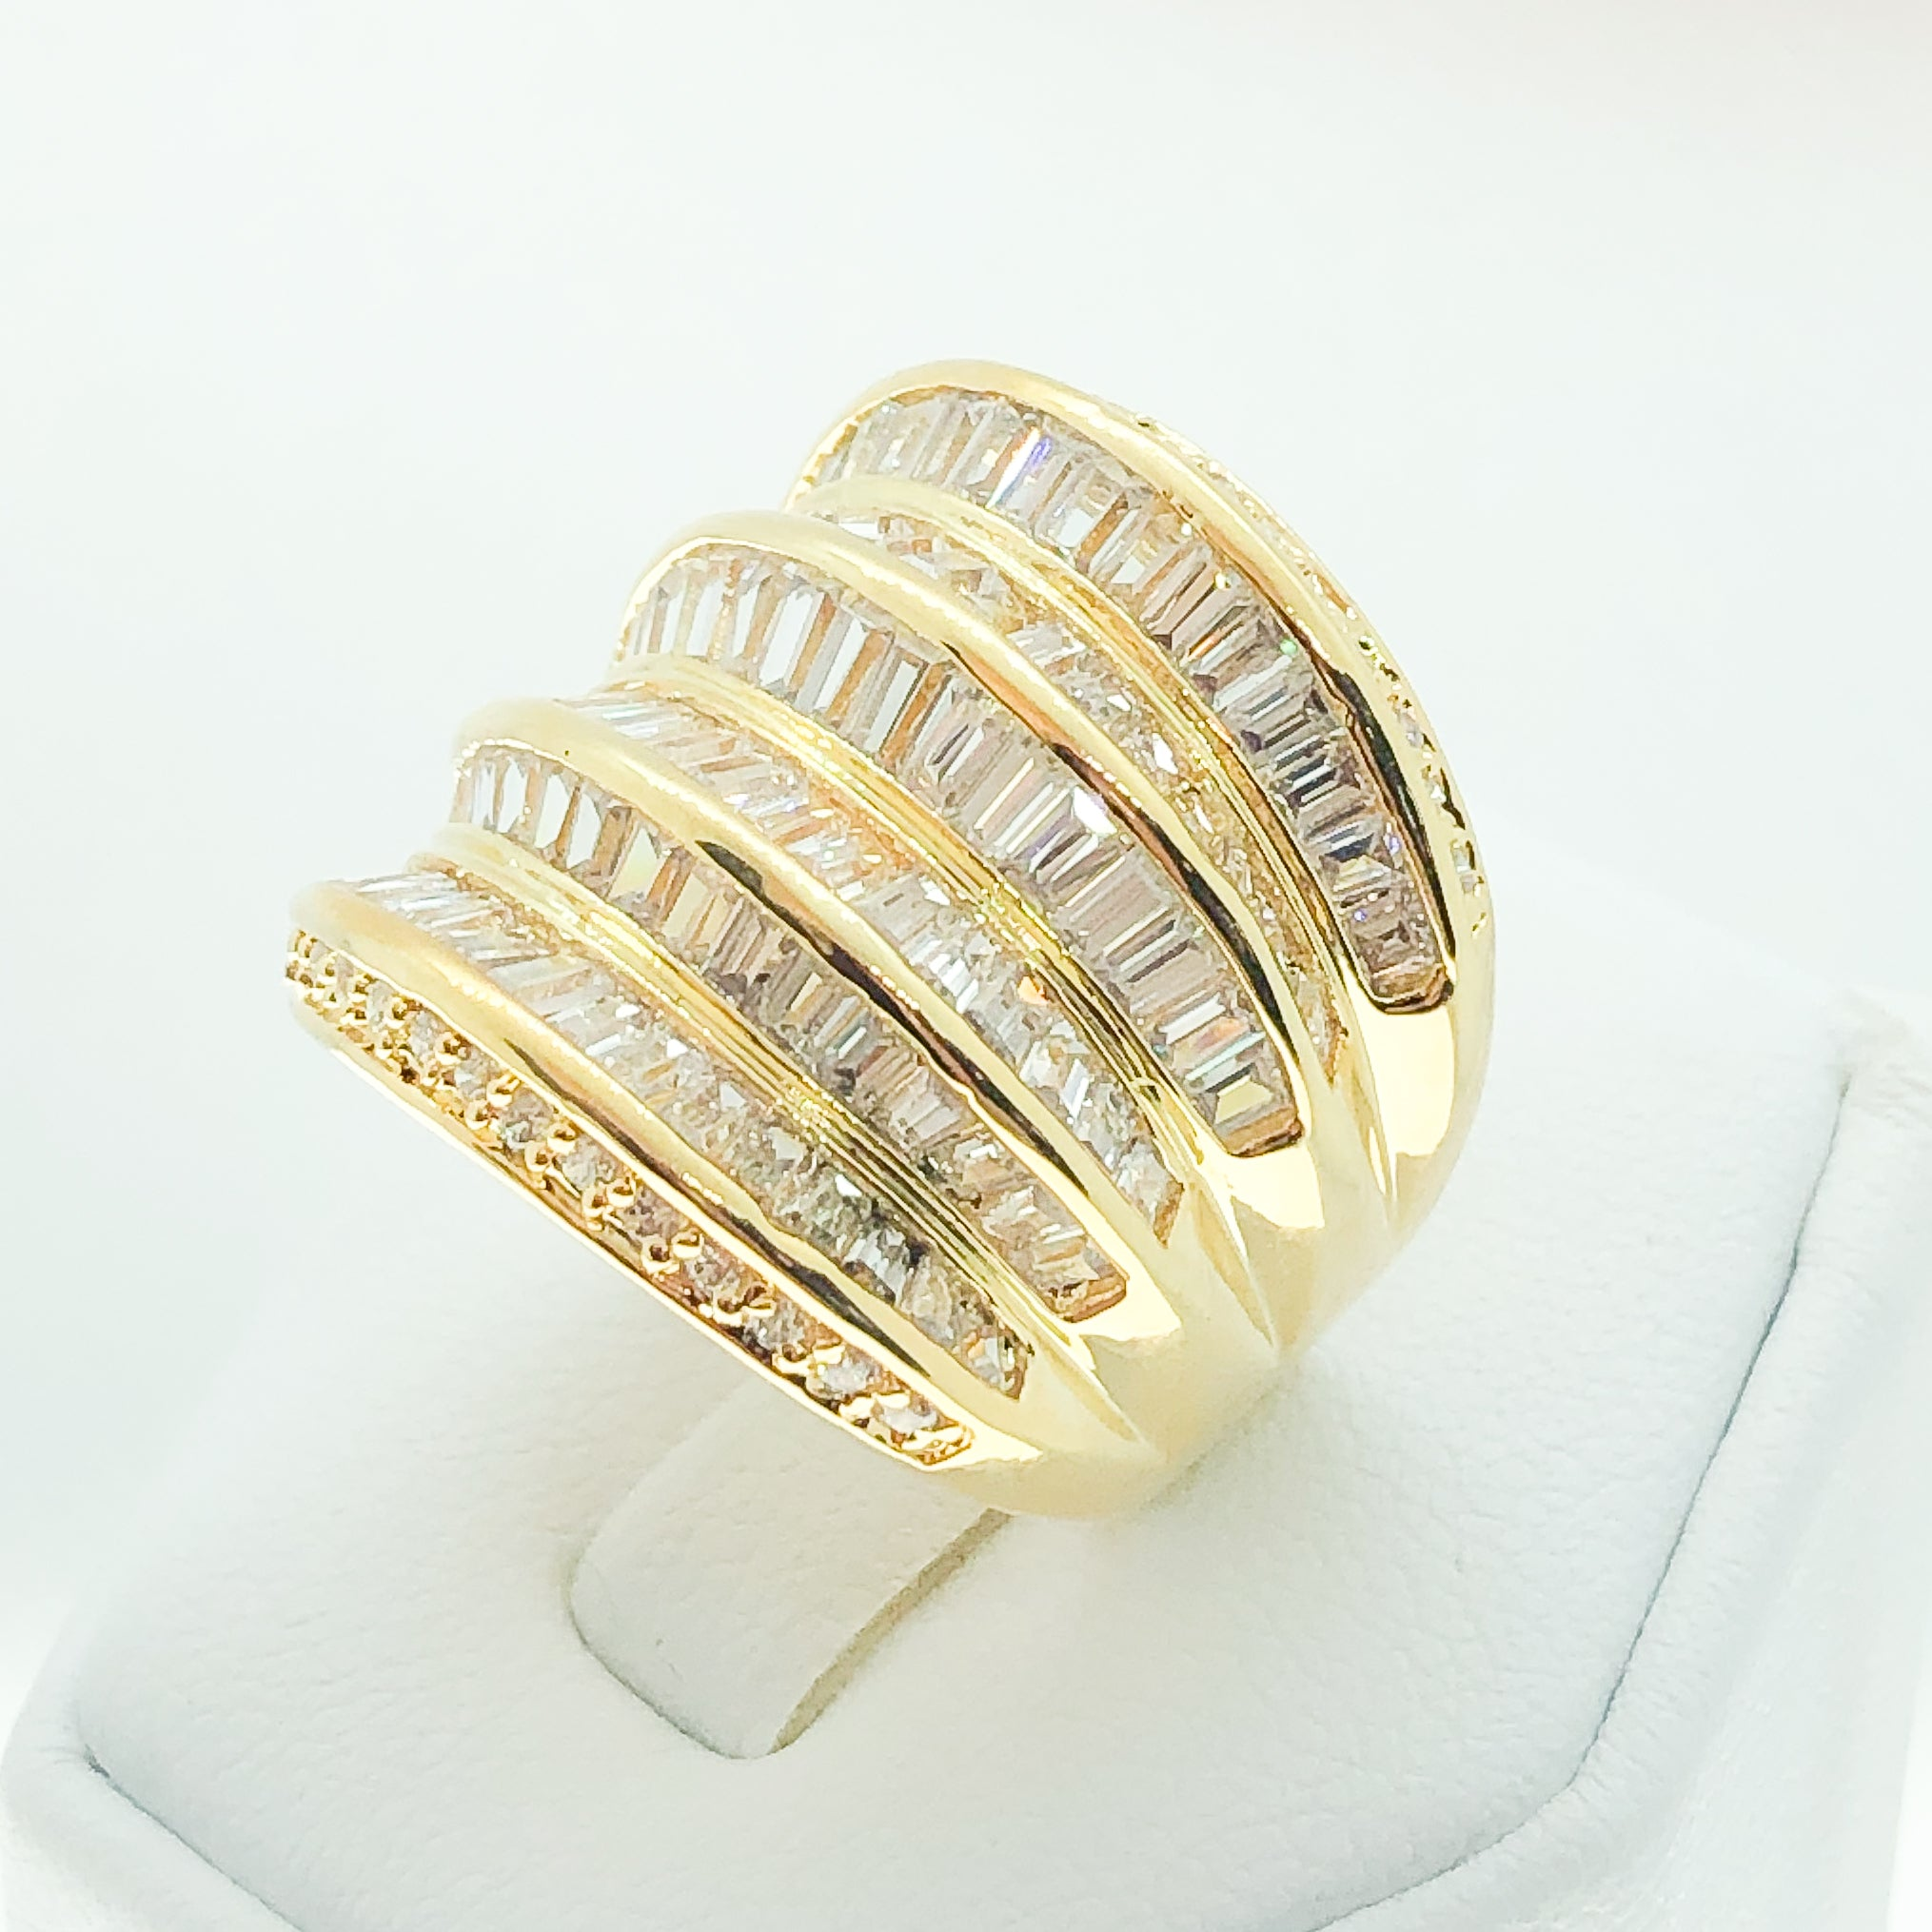 ID:R3498 Women Fashion Jewelry 18K Yellow Gold GF Charming Luxury Diamonique Promise Wedding Anniversary Eternity Band Ring